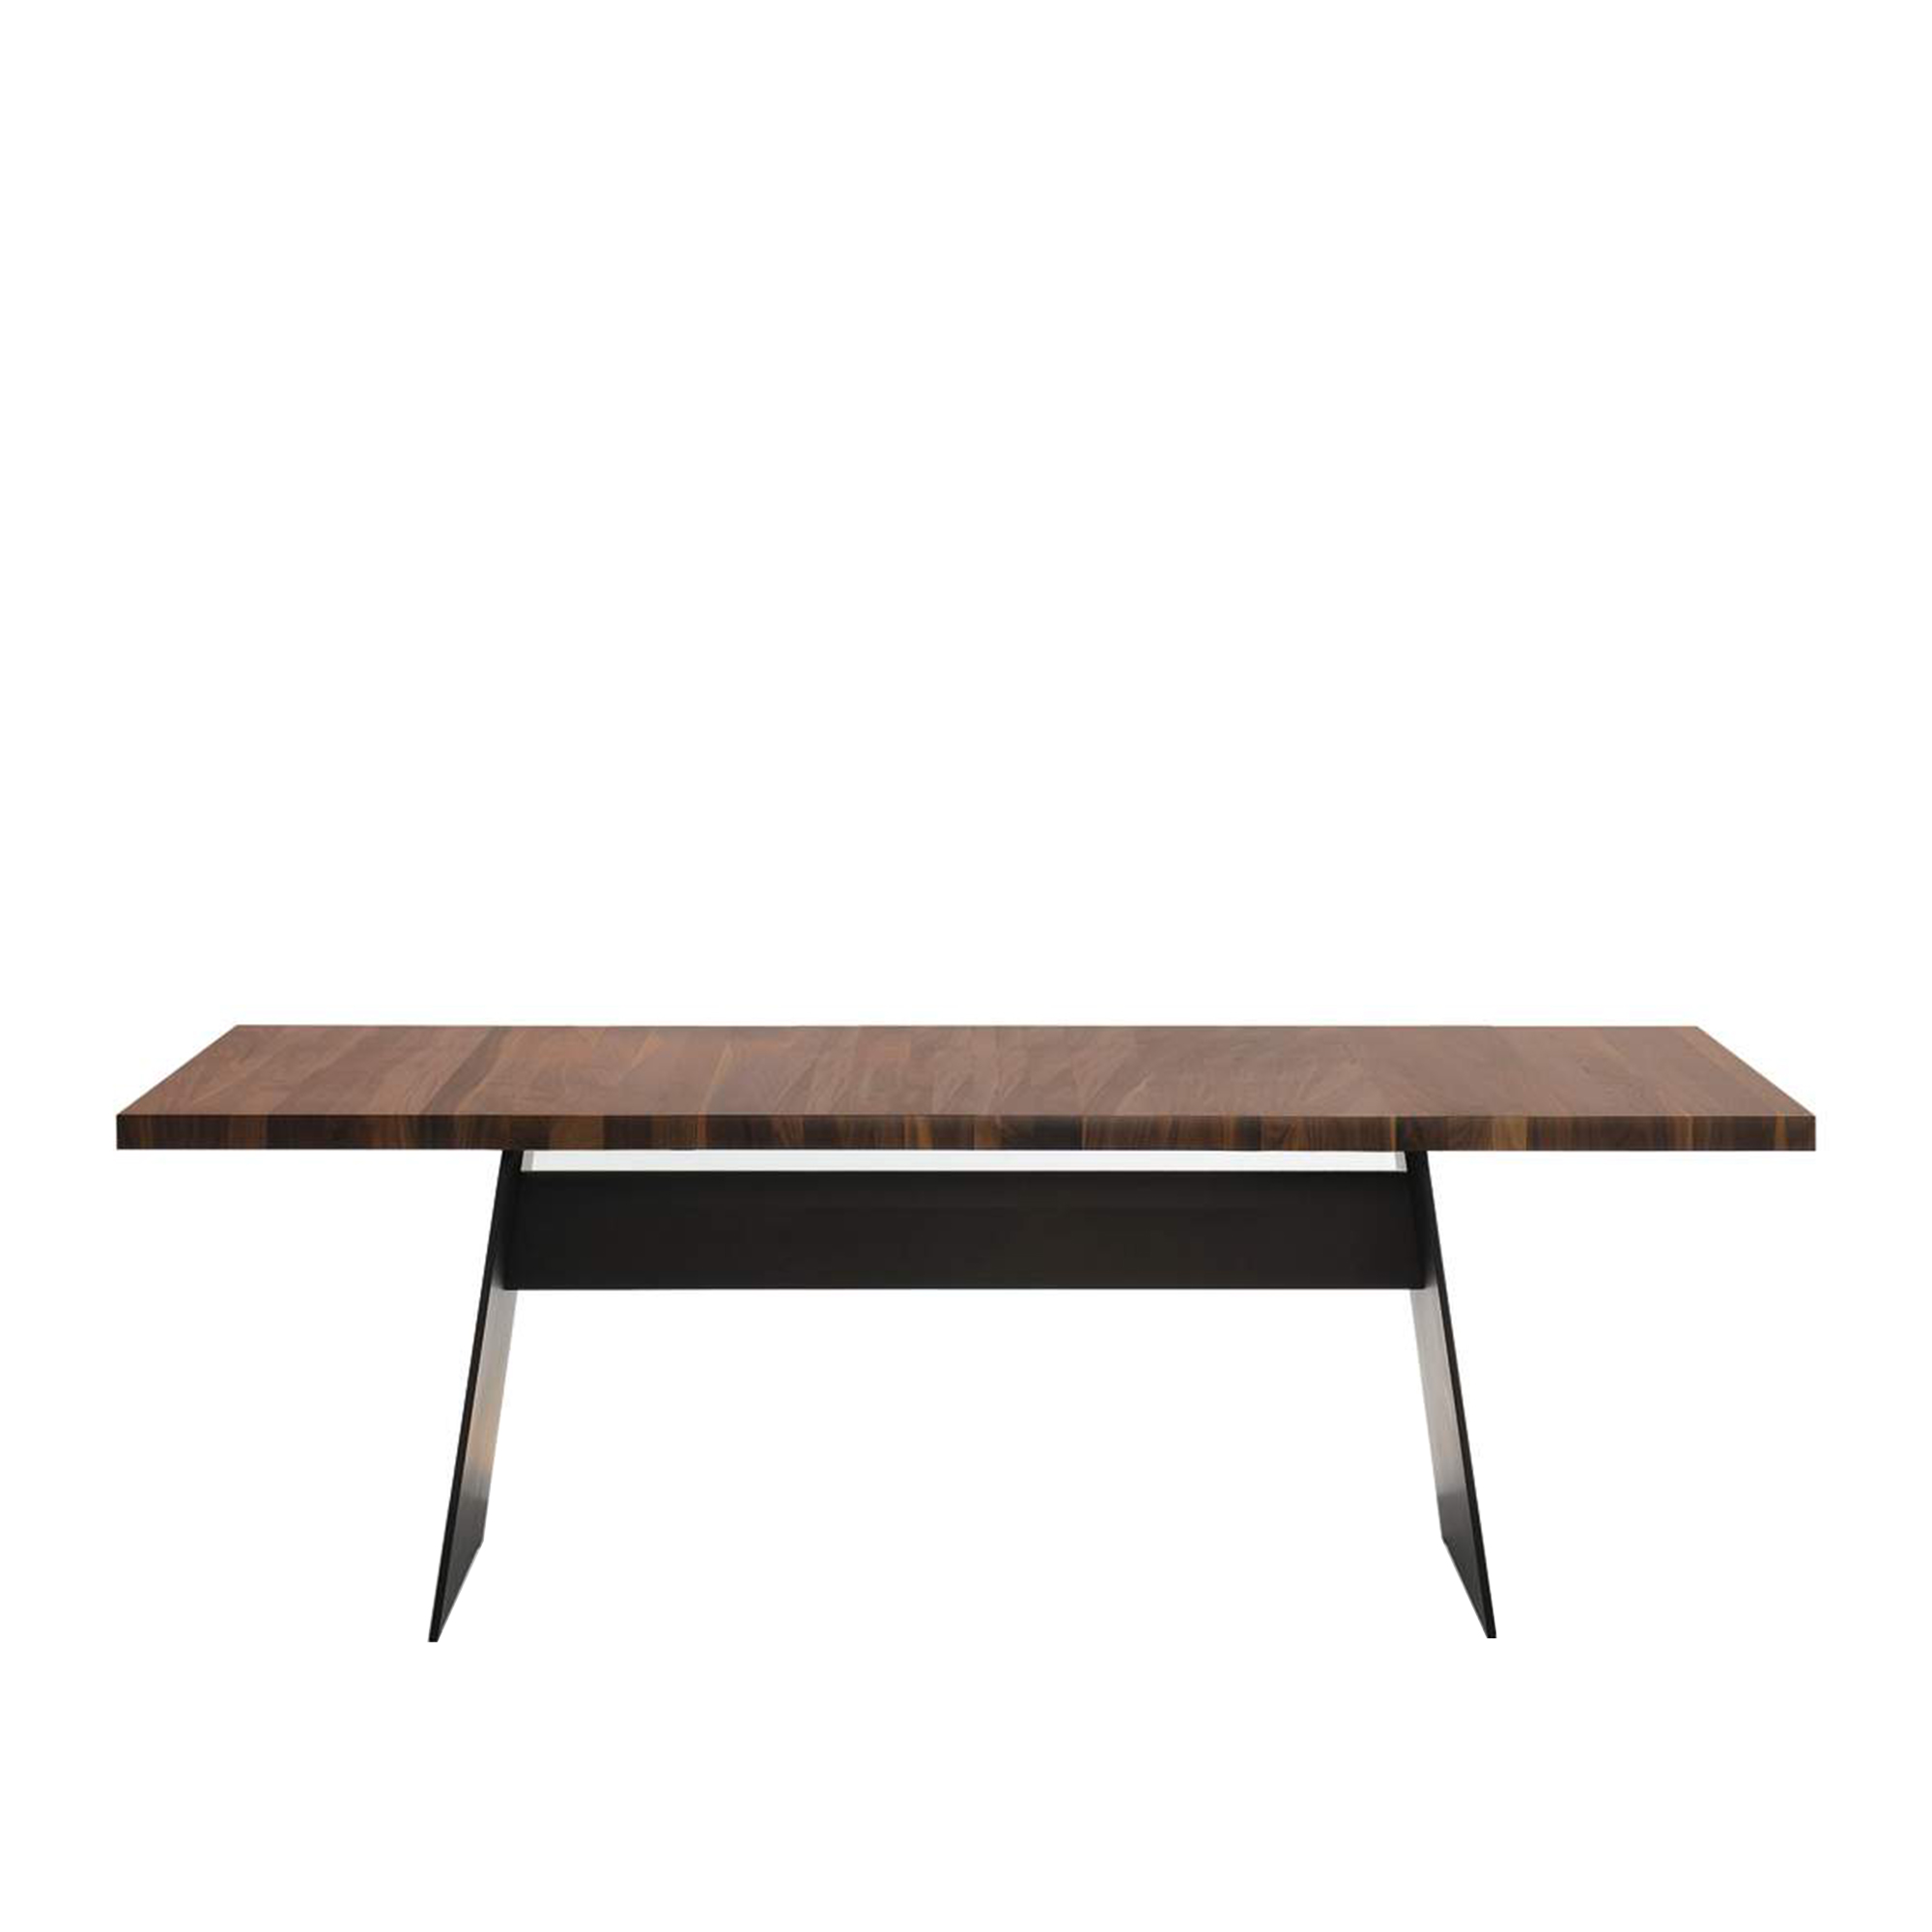 Tadeo table